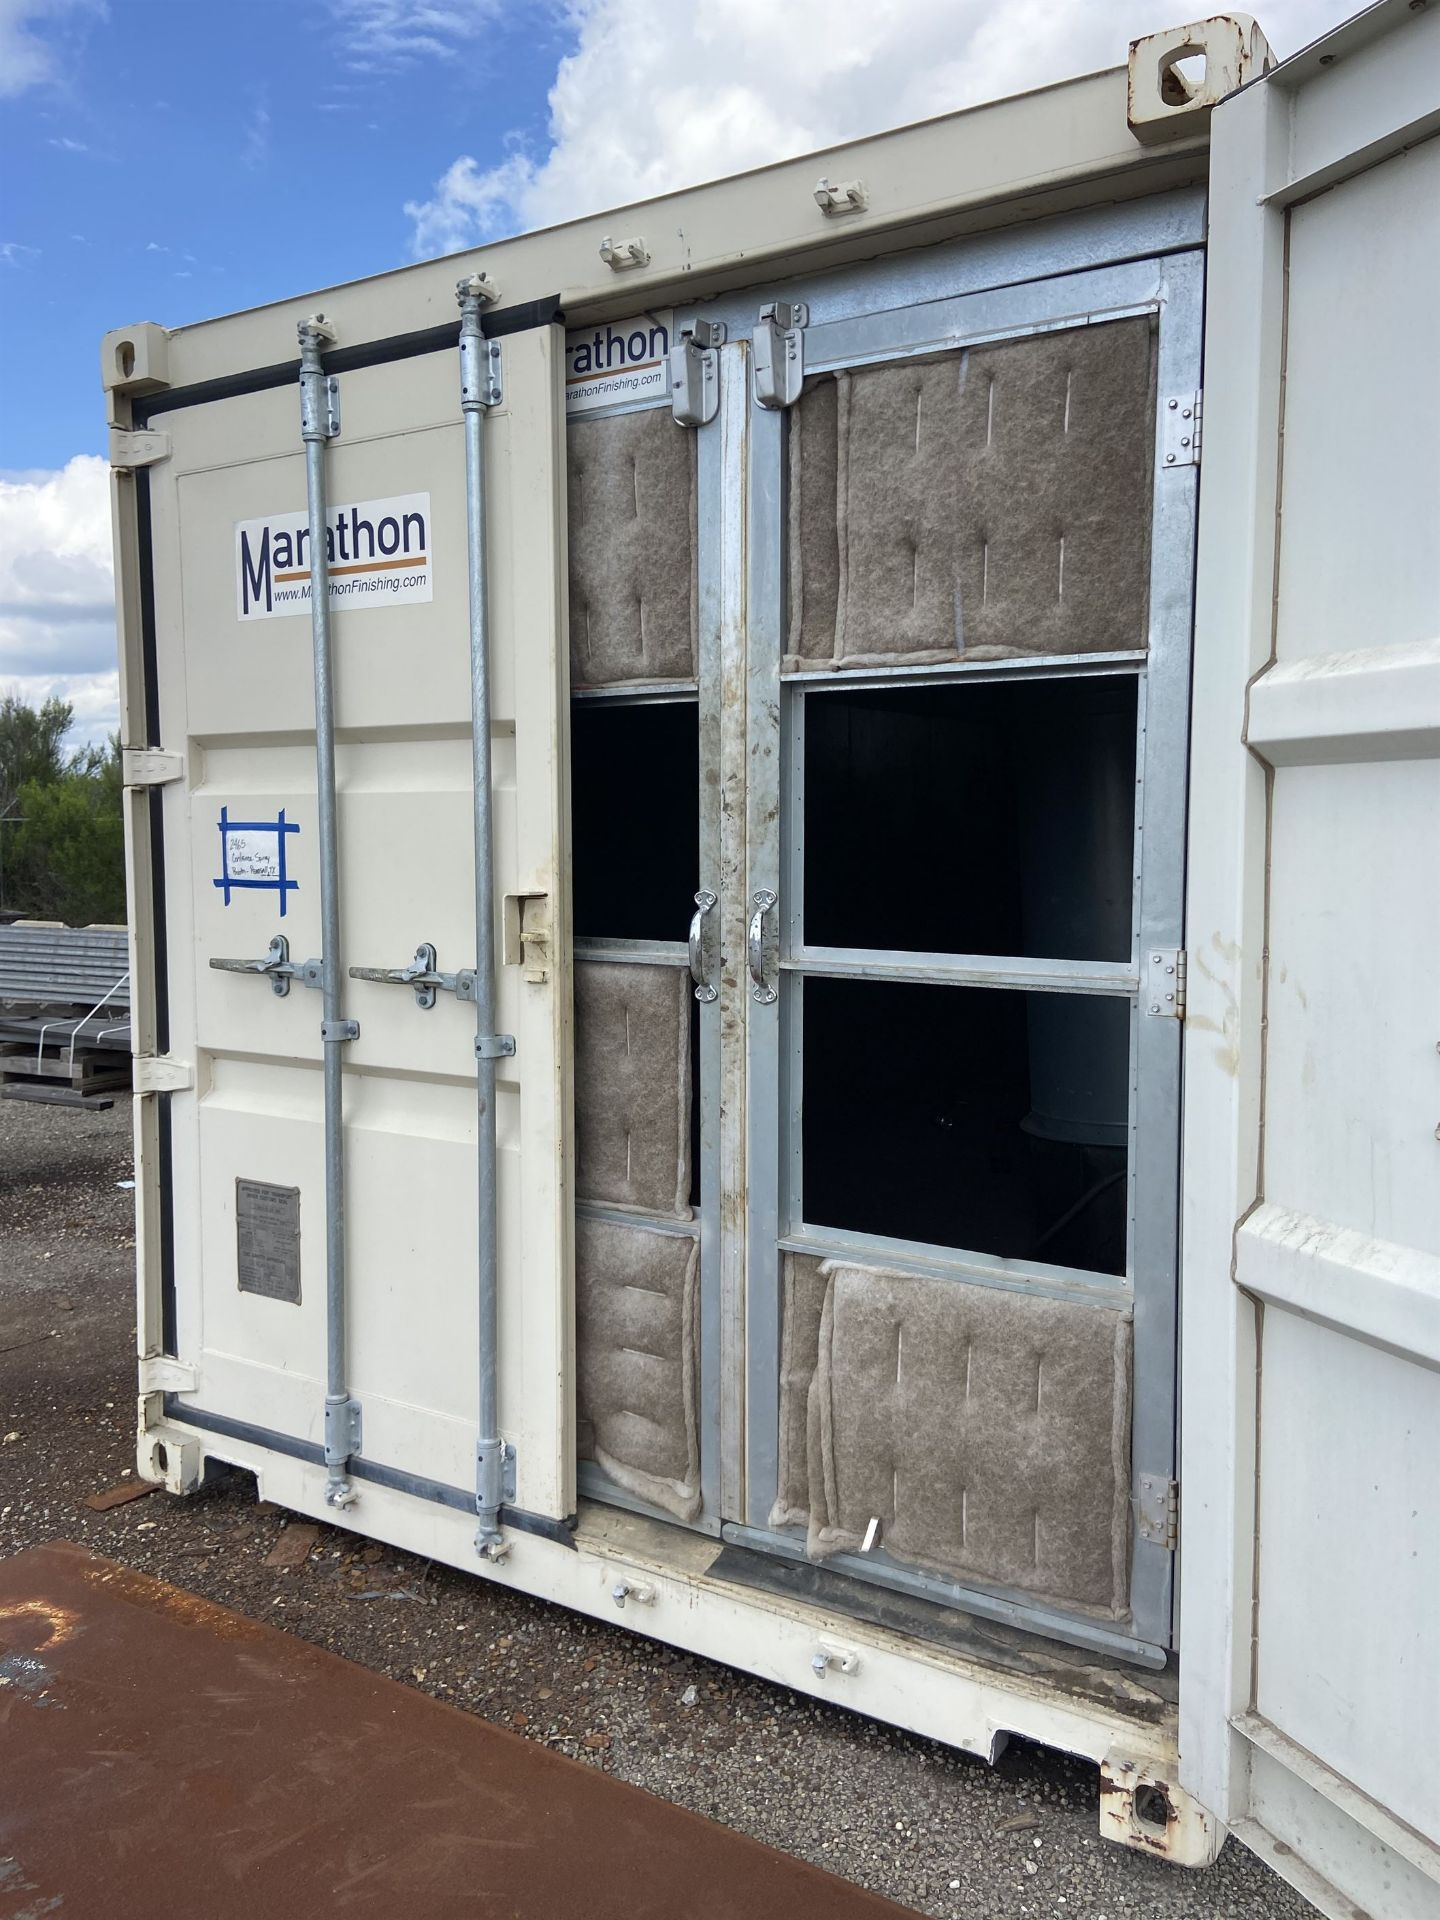 Marathon 20' Portable Paint booth with Fume Fan and Ducting - Image 3 of 5